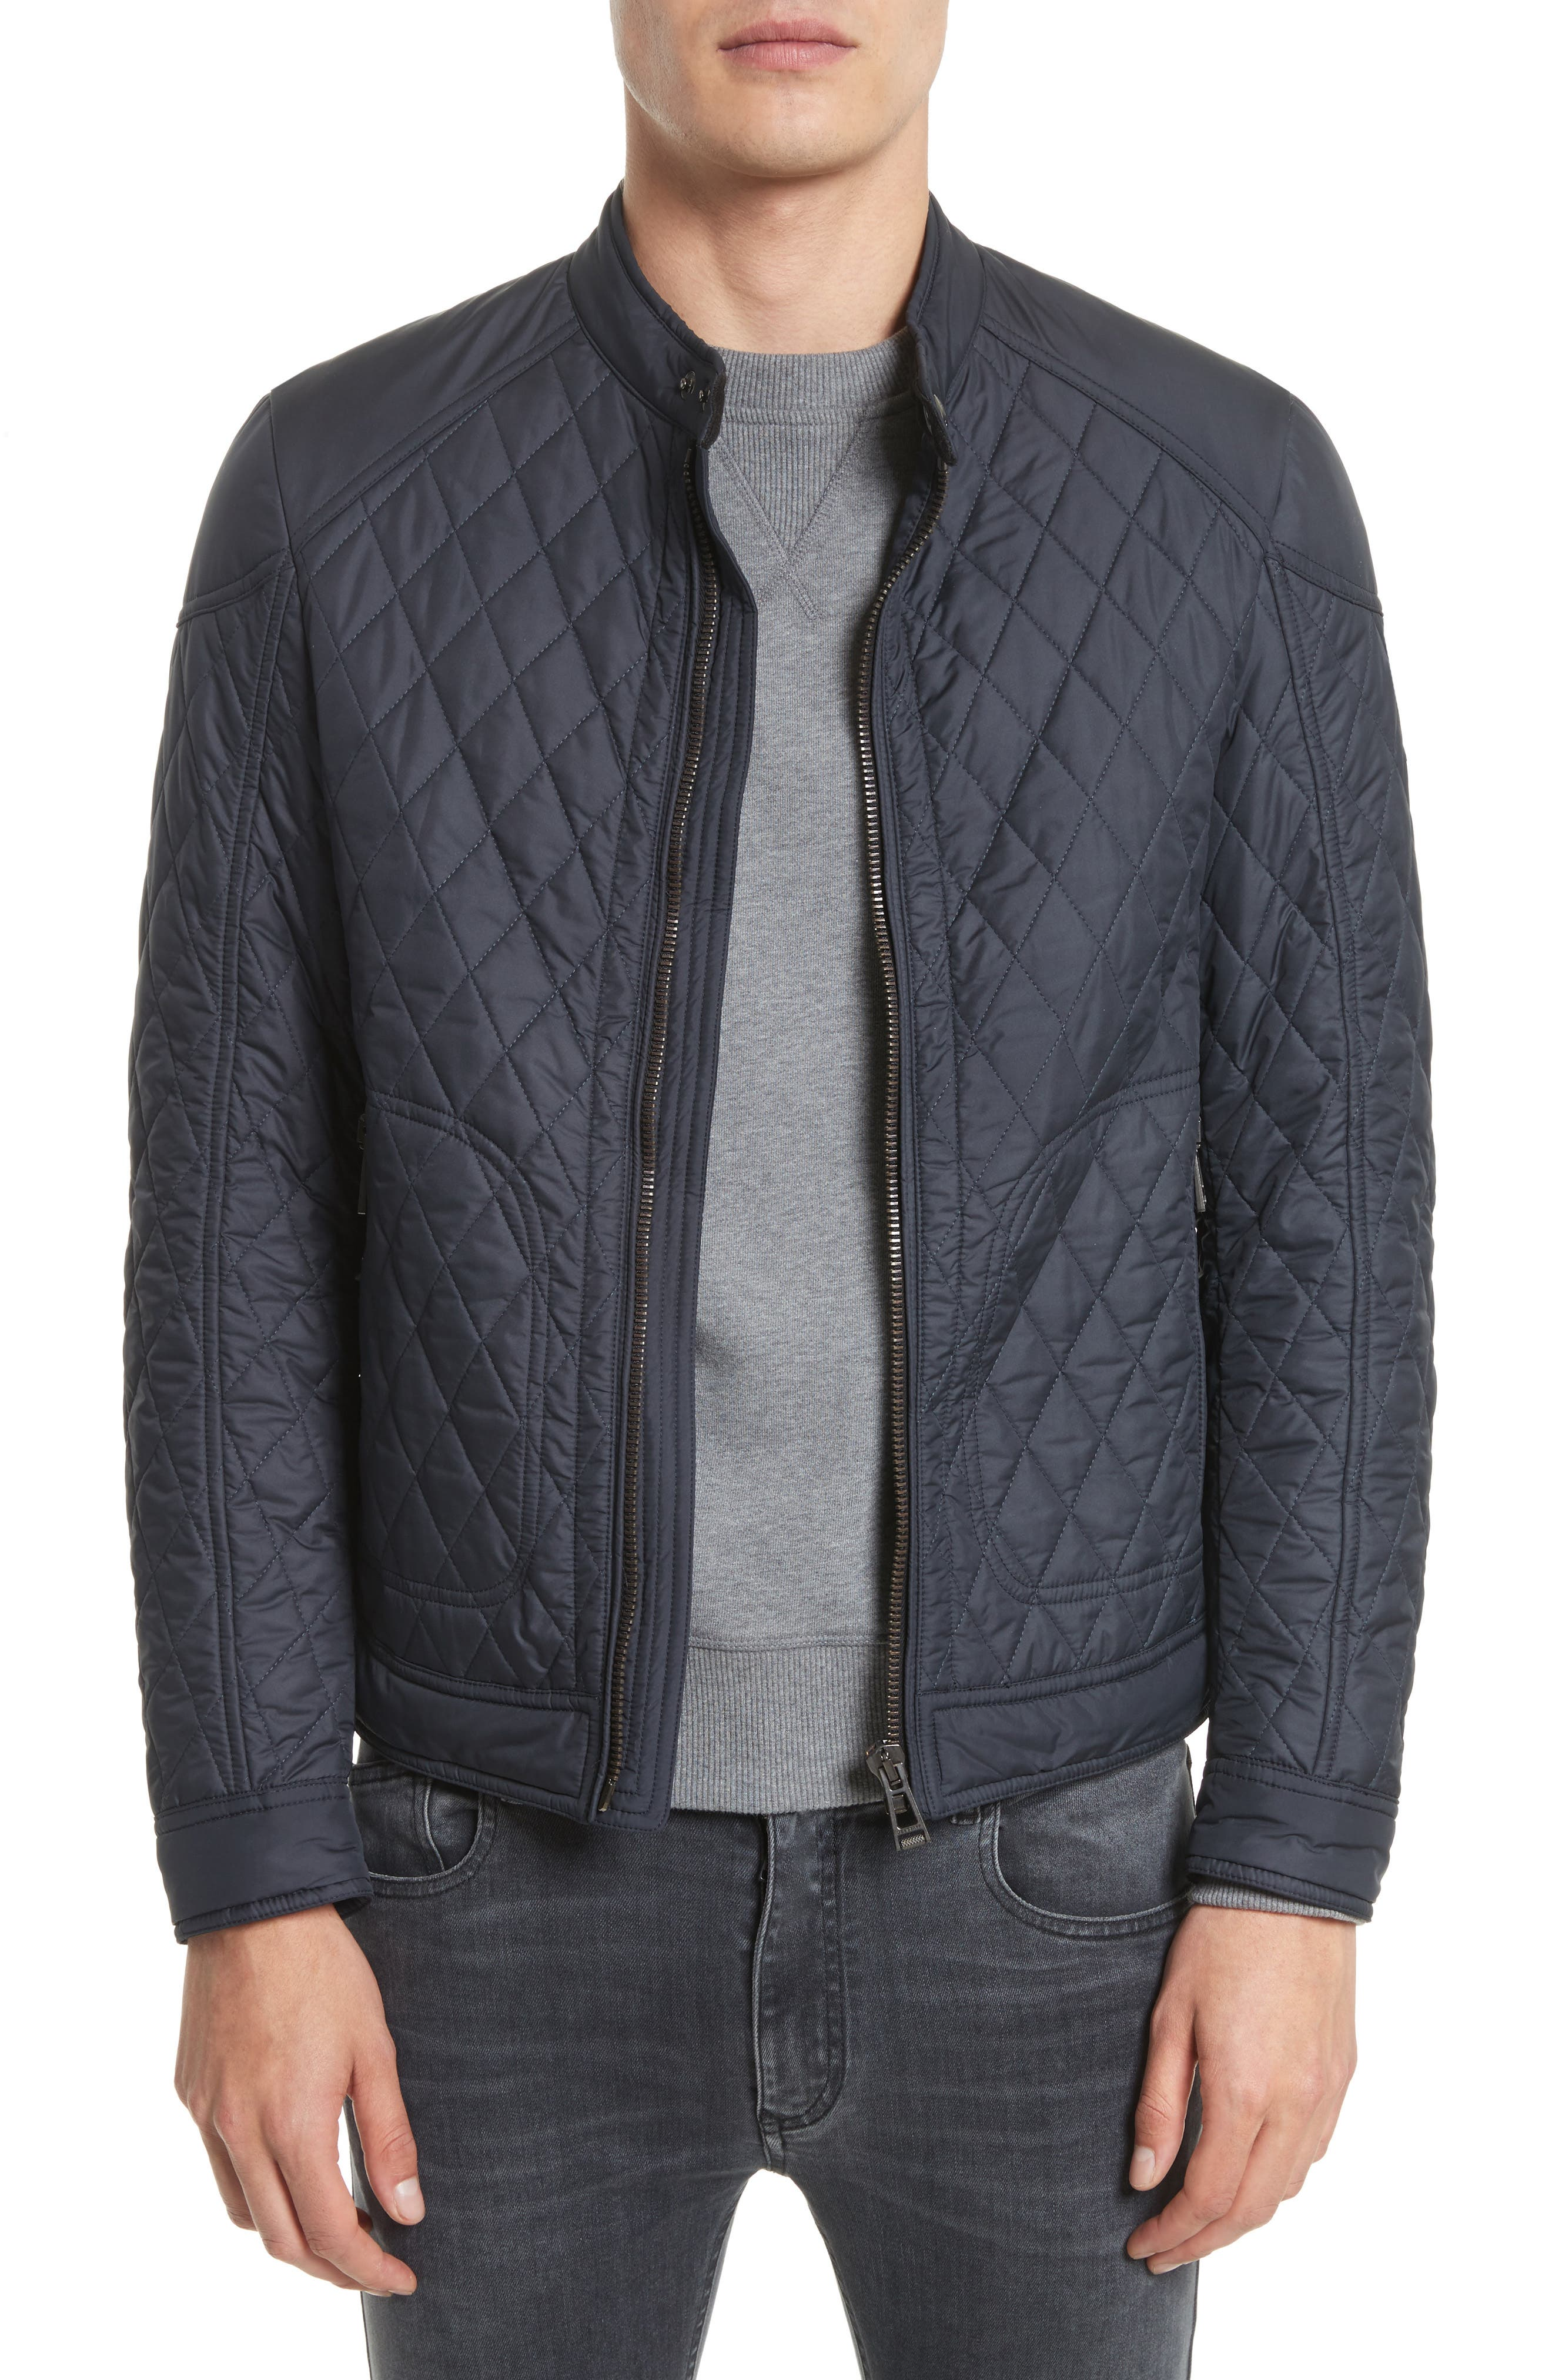 Bramley 2.0 Quilted Jacket,                             Main thumbnail 1, color,                             Dark Navy